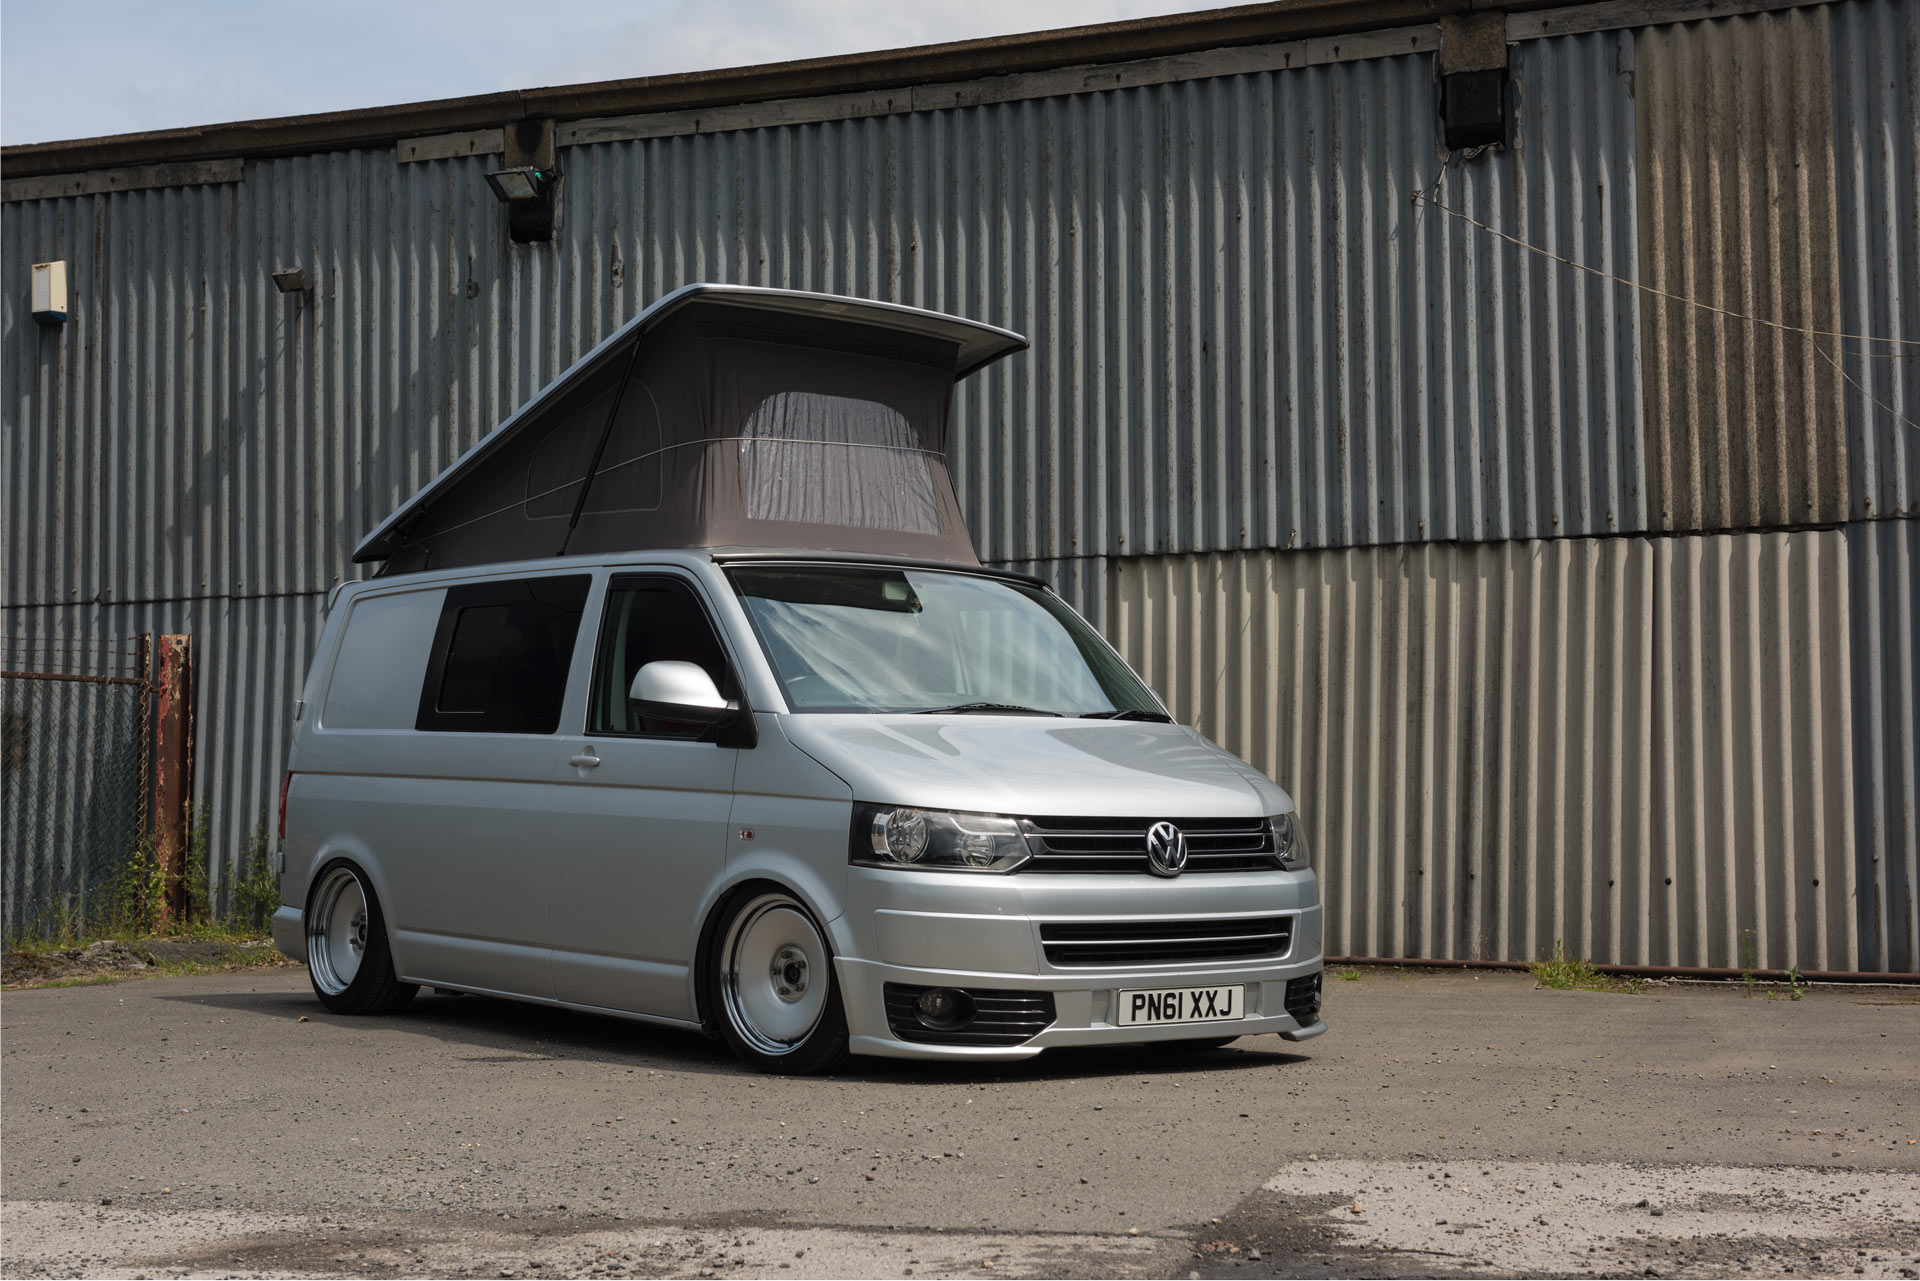 silver vw transporter before wipdesigns photographer